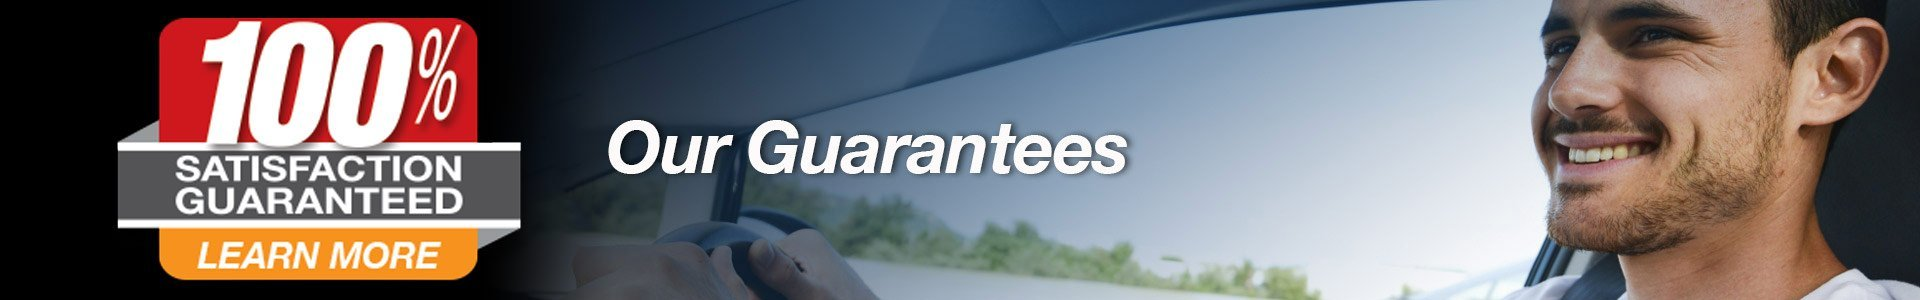 our guarantees